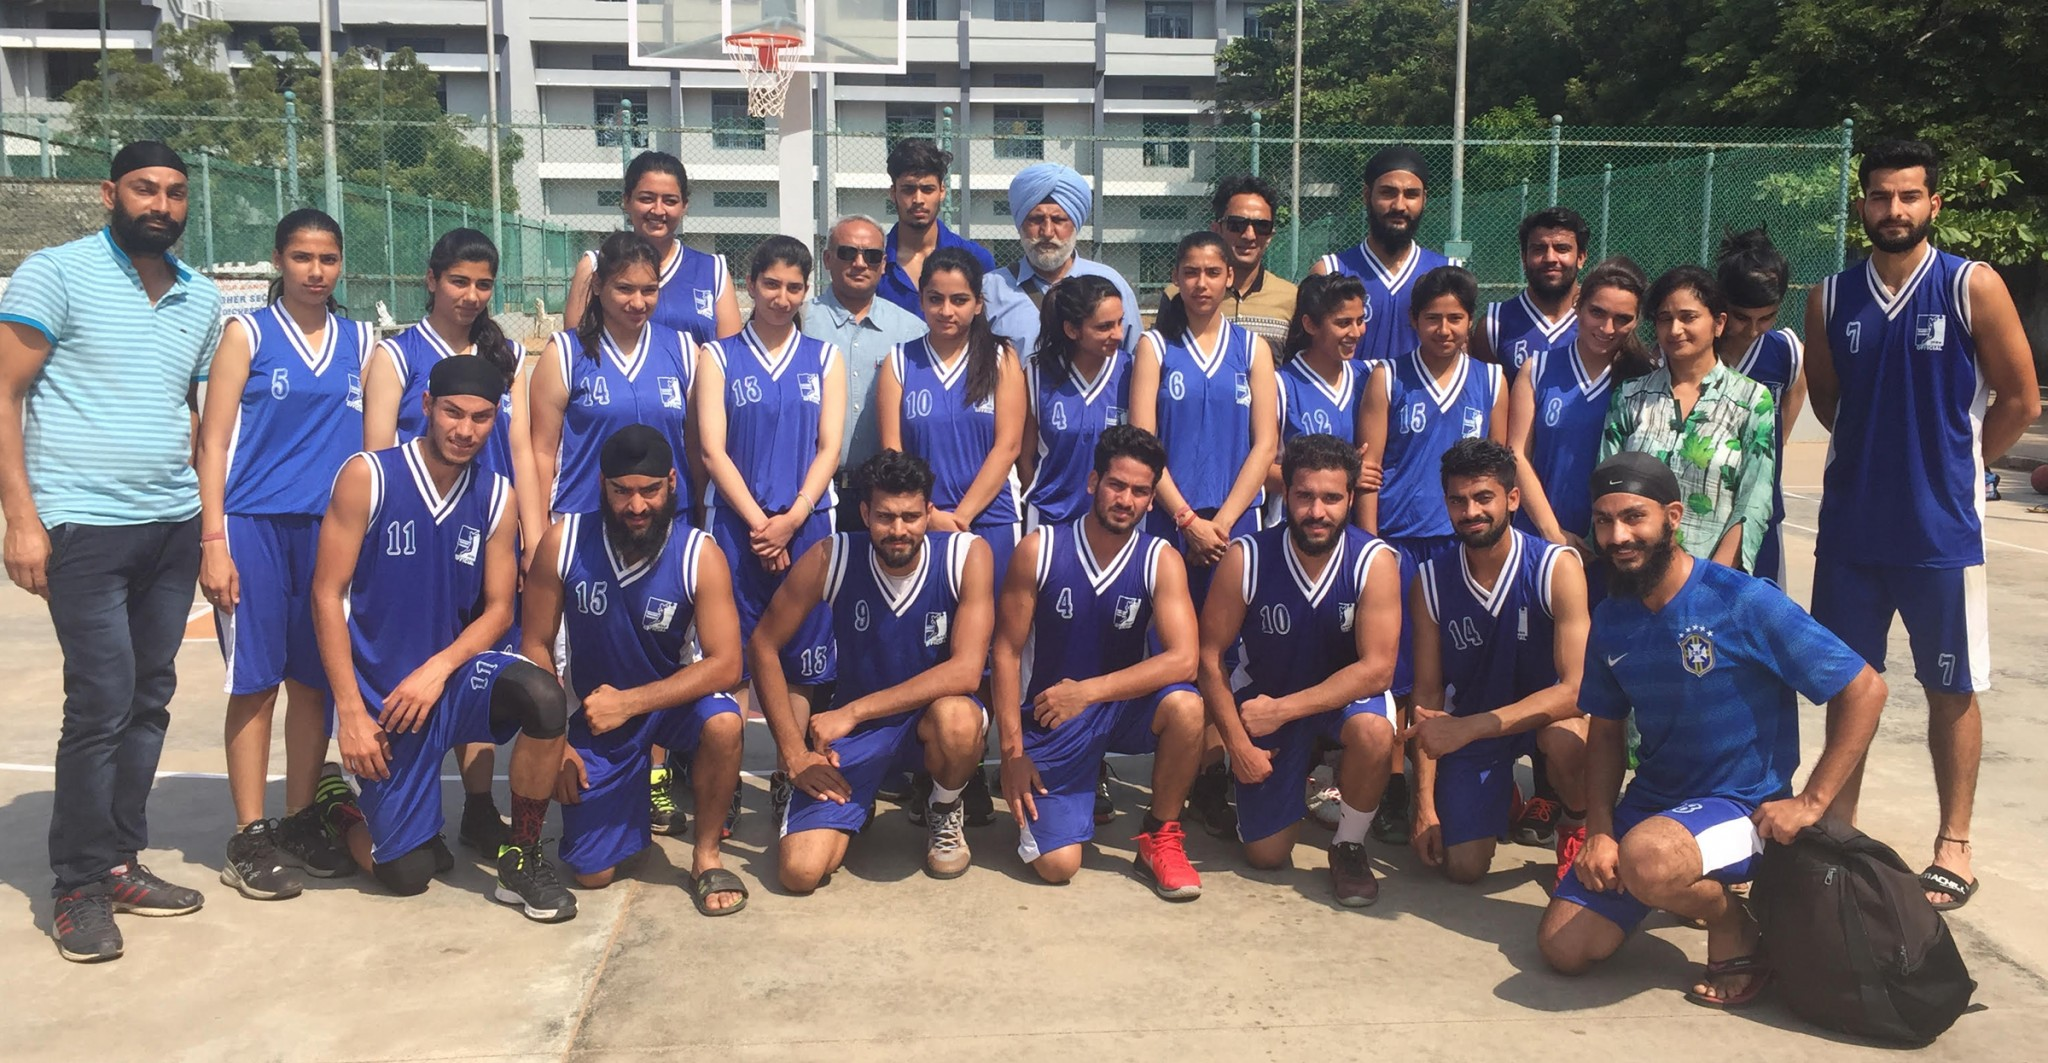 J&K men and women basketball teams posing for a group photograph after registering victories on Wednesday.